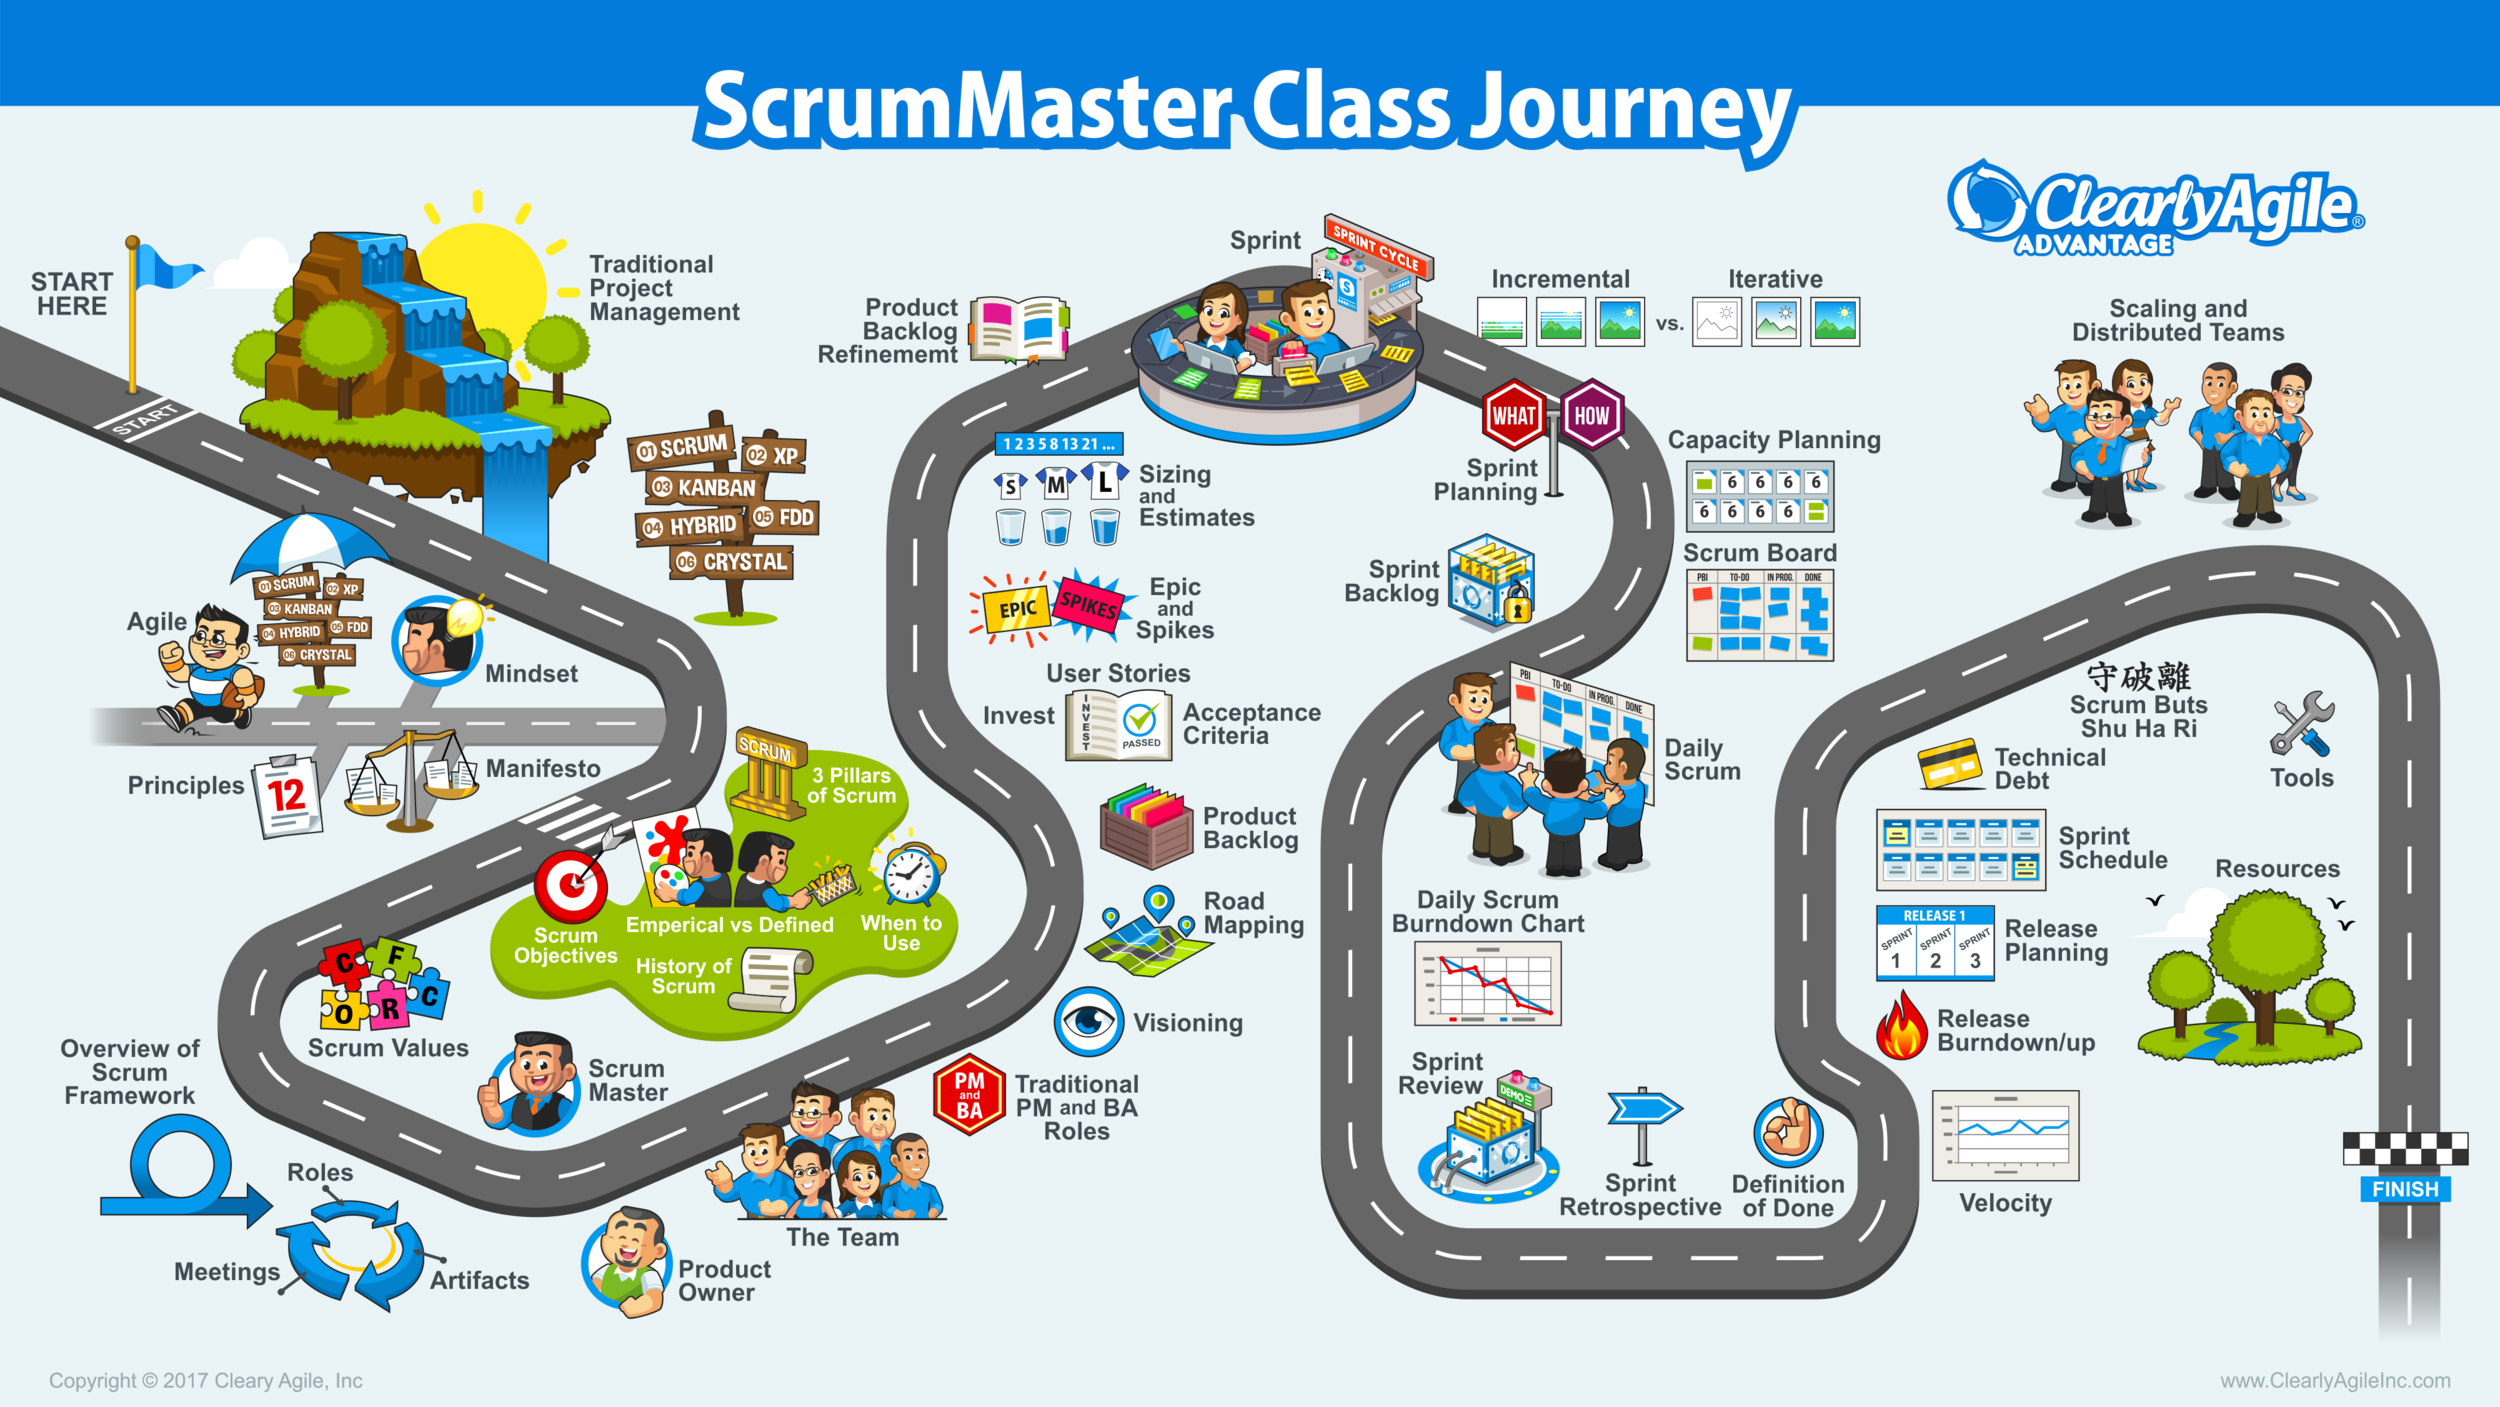 The Class Journey